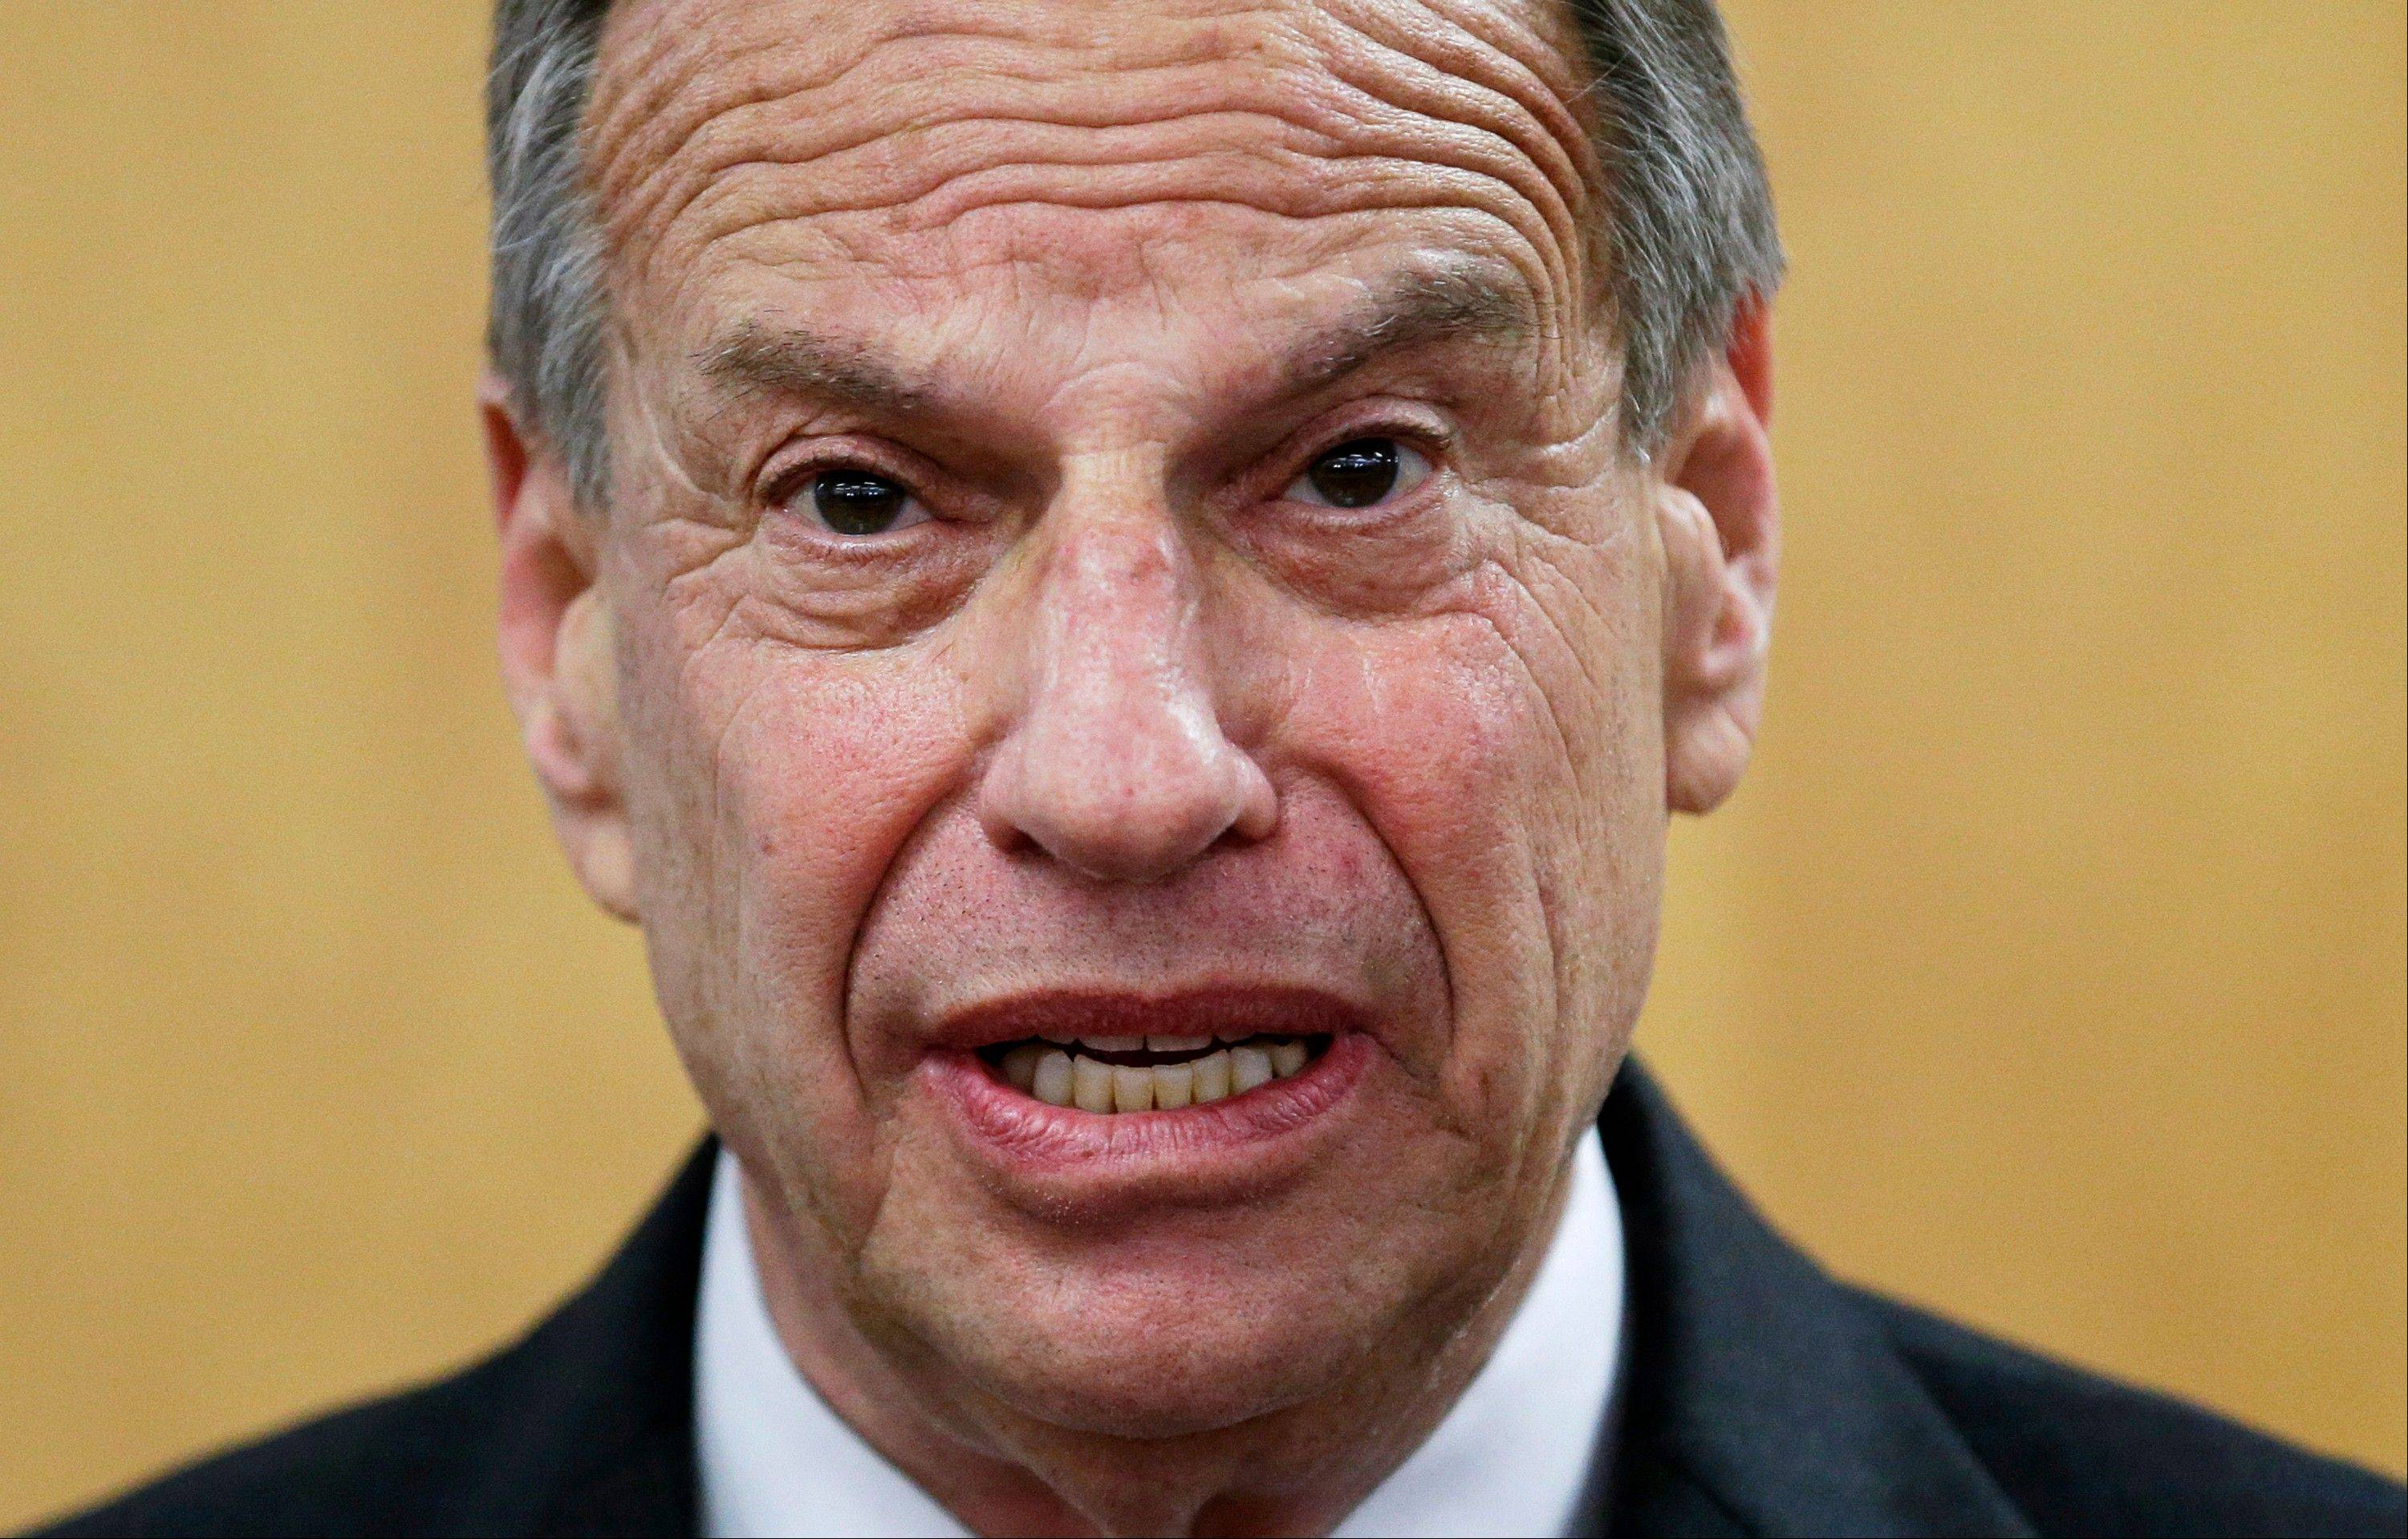 San Diego Mayor Bob Filner apparently is involved in talks to settle sexual harassment allegations after undergoing an intensive two-week therapy program.